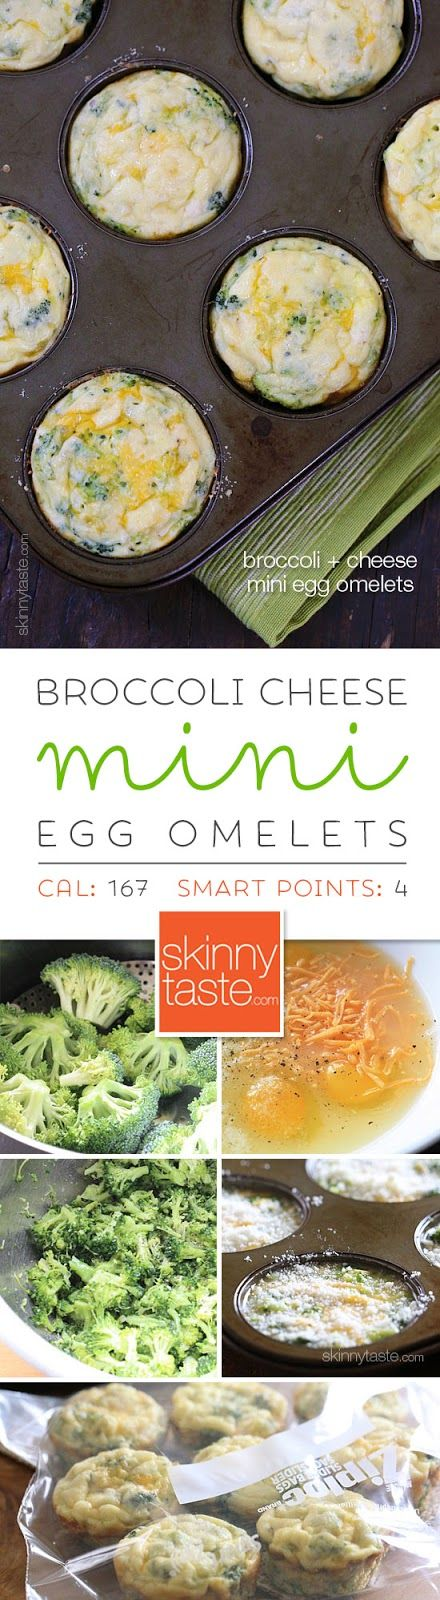 Broccoli and Cheese Mini Egg Omelets – perfect to make ahead for the week. Freezer-friendly too!